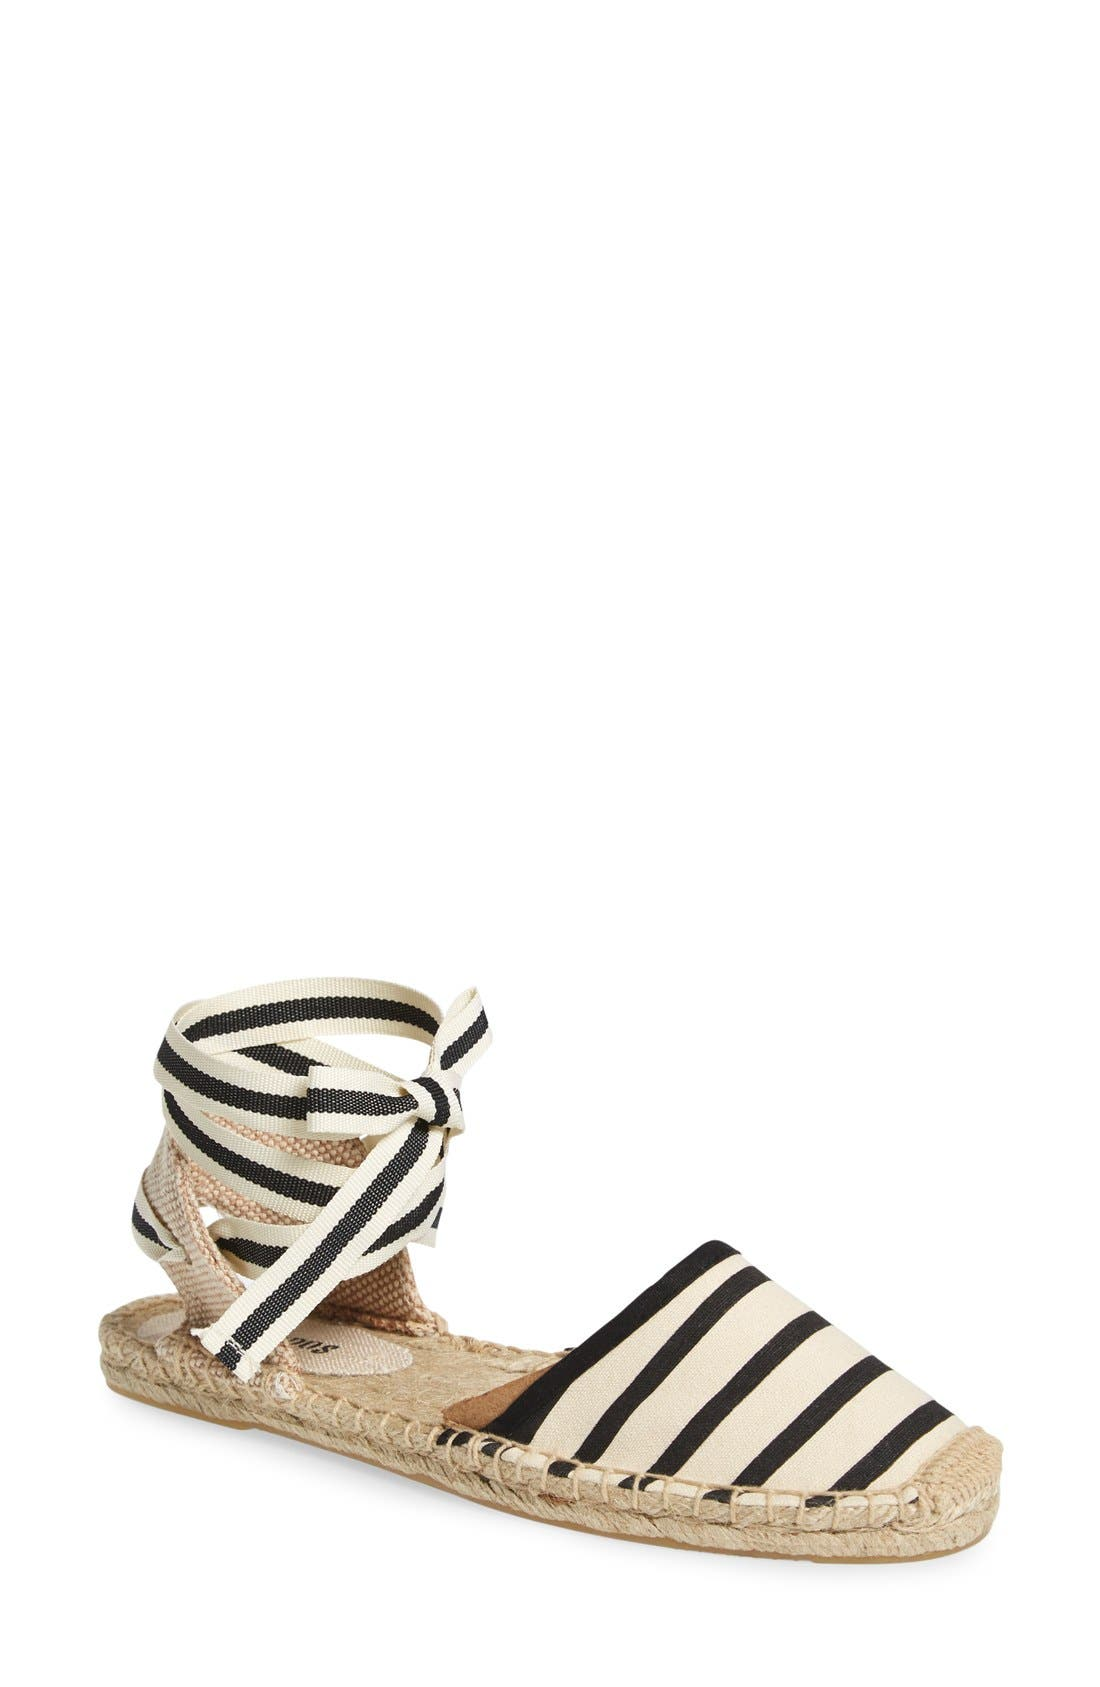 SOLUDOS Lace-Up Espadrille Sandal